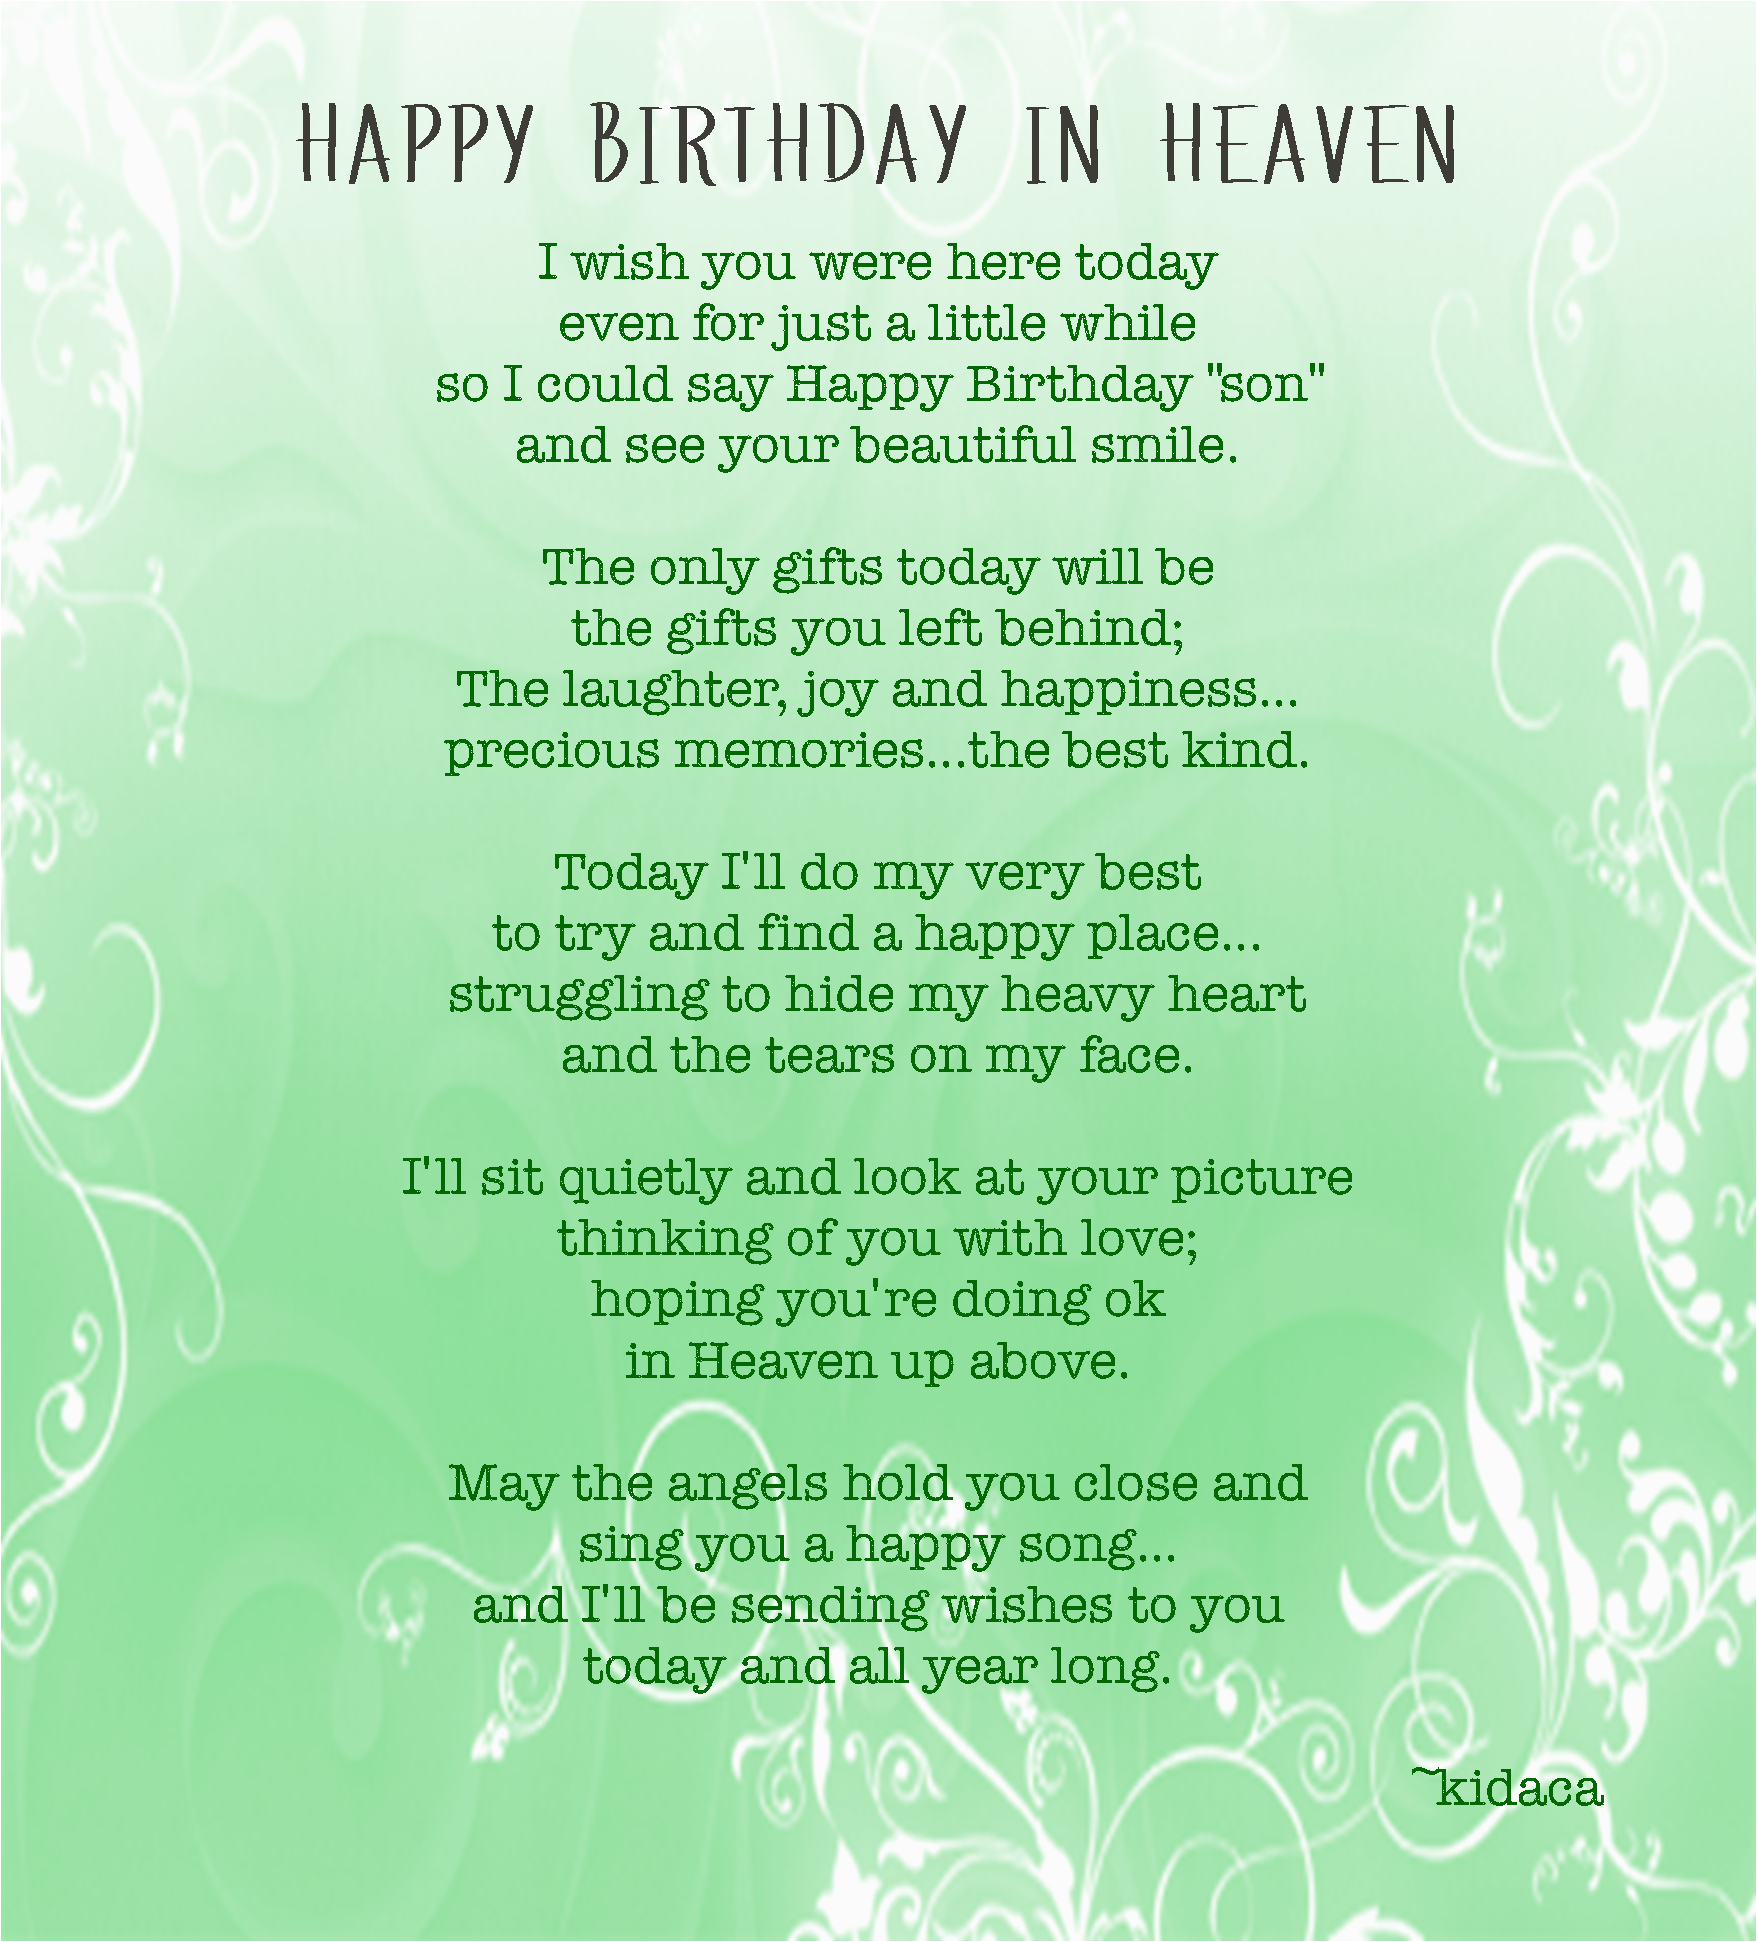 Happy Birthday to A Friend who Passed Away Quotes Birthday Quotes for someone Passed Quotesgram